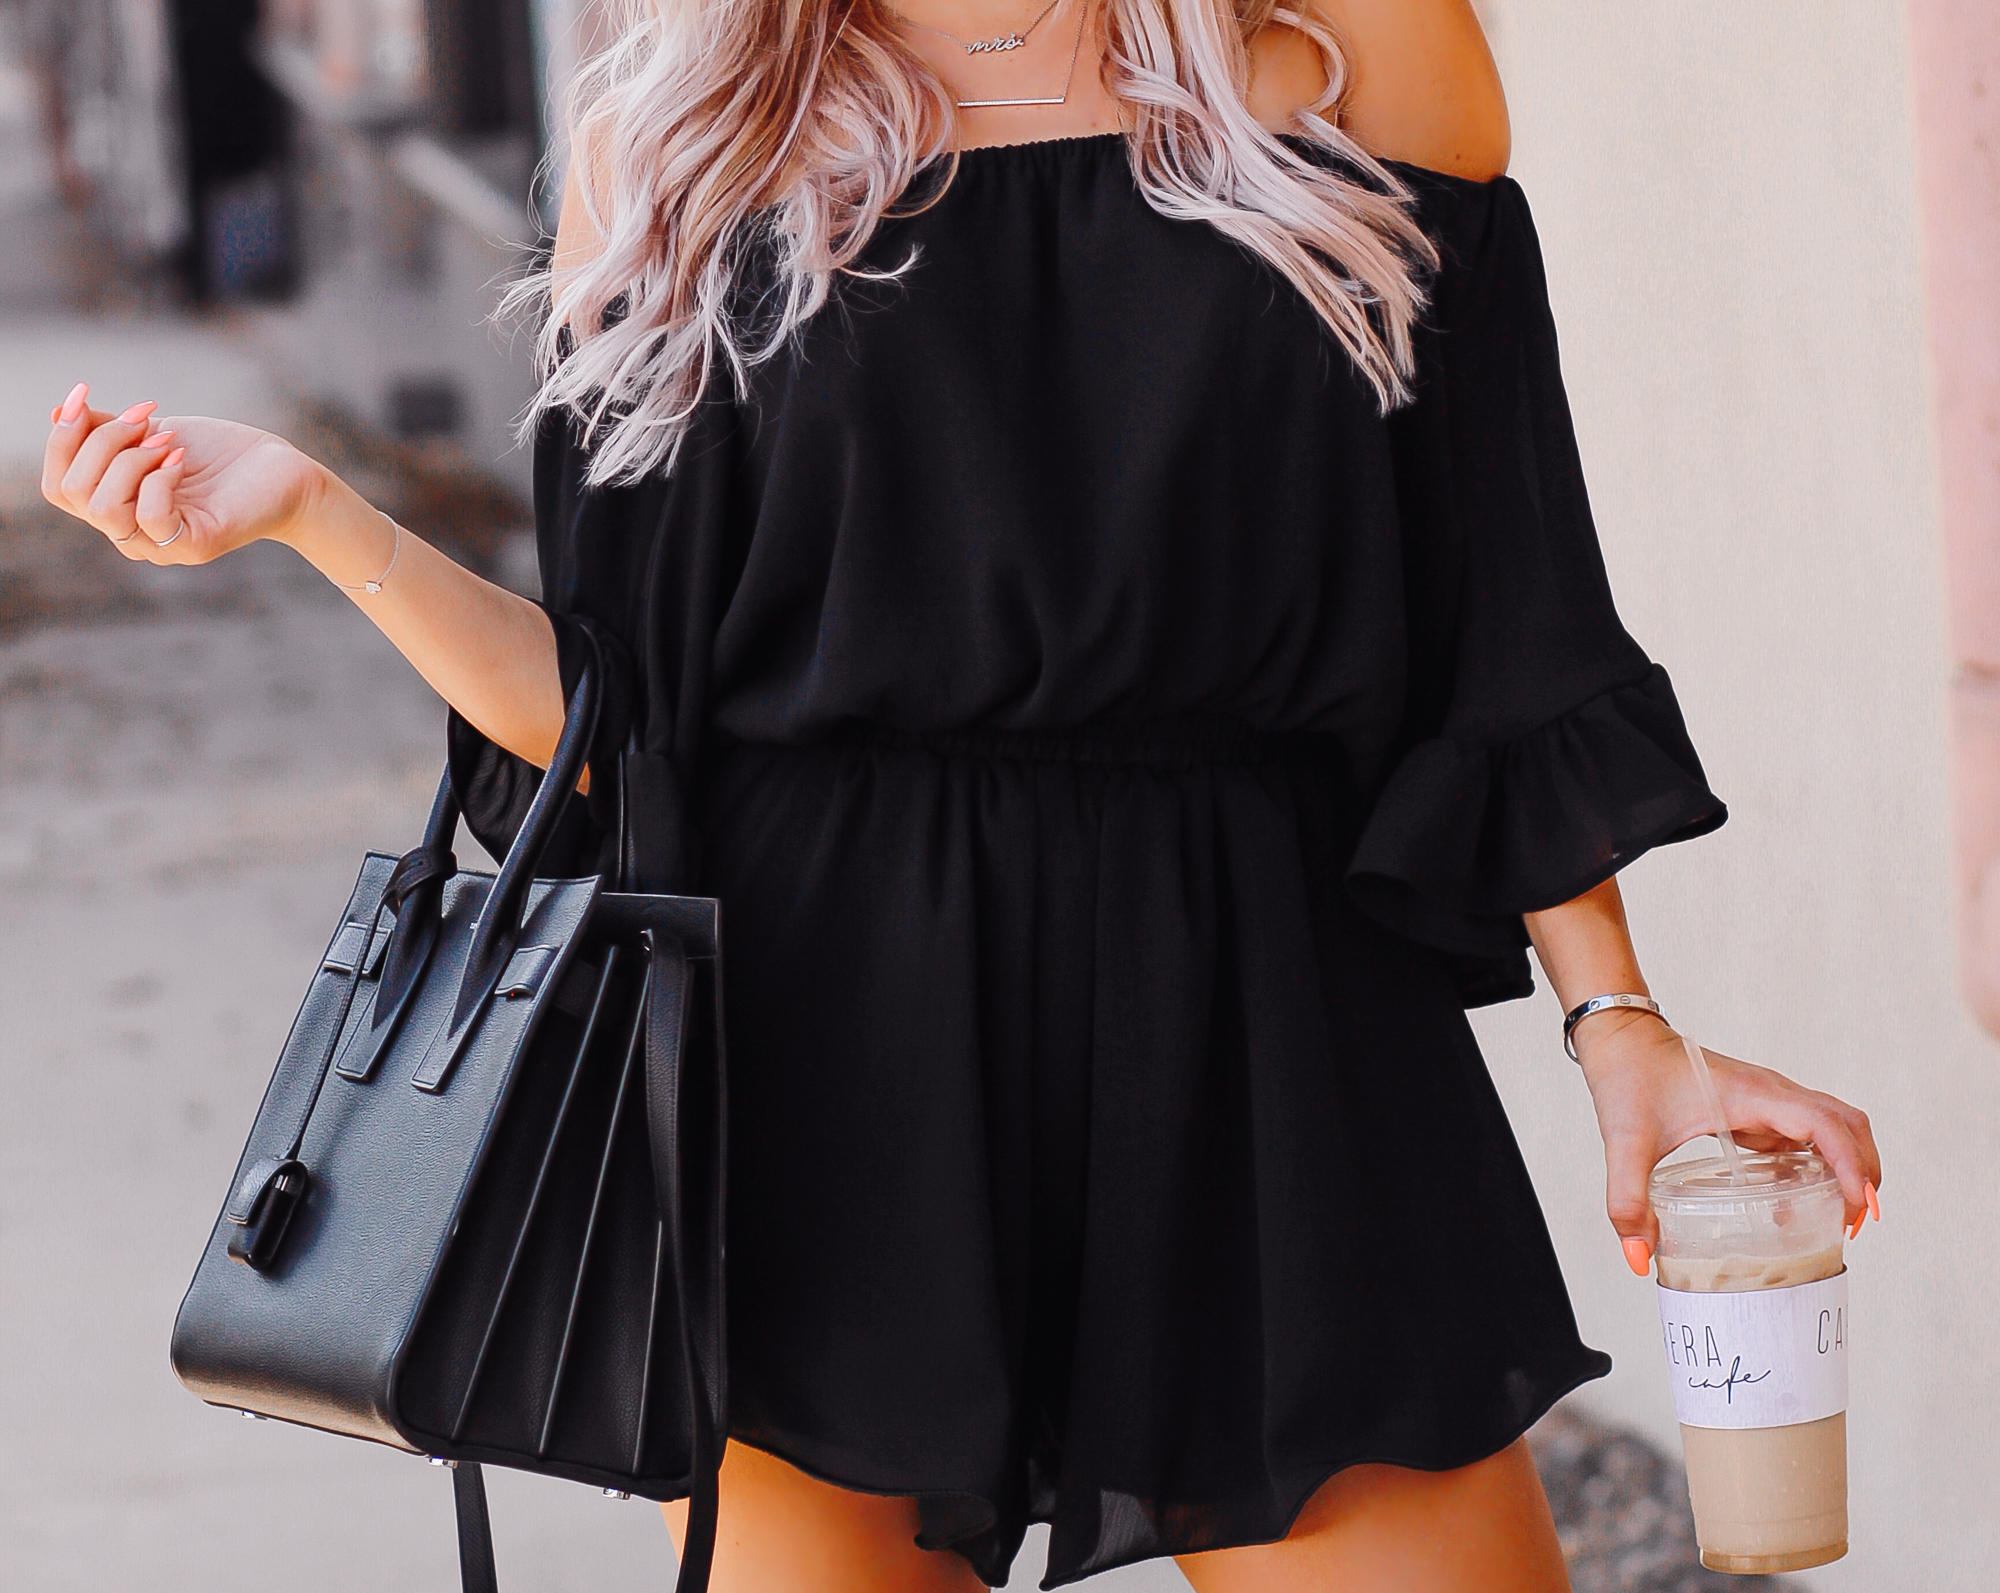 Blondie in the City | Black Airy Chiffon Romper @chicwish | Black YSL Bag | Chic Summer Style